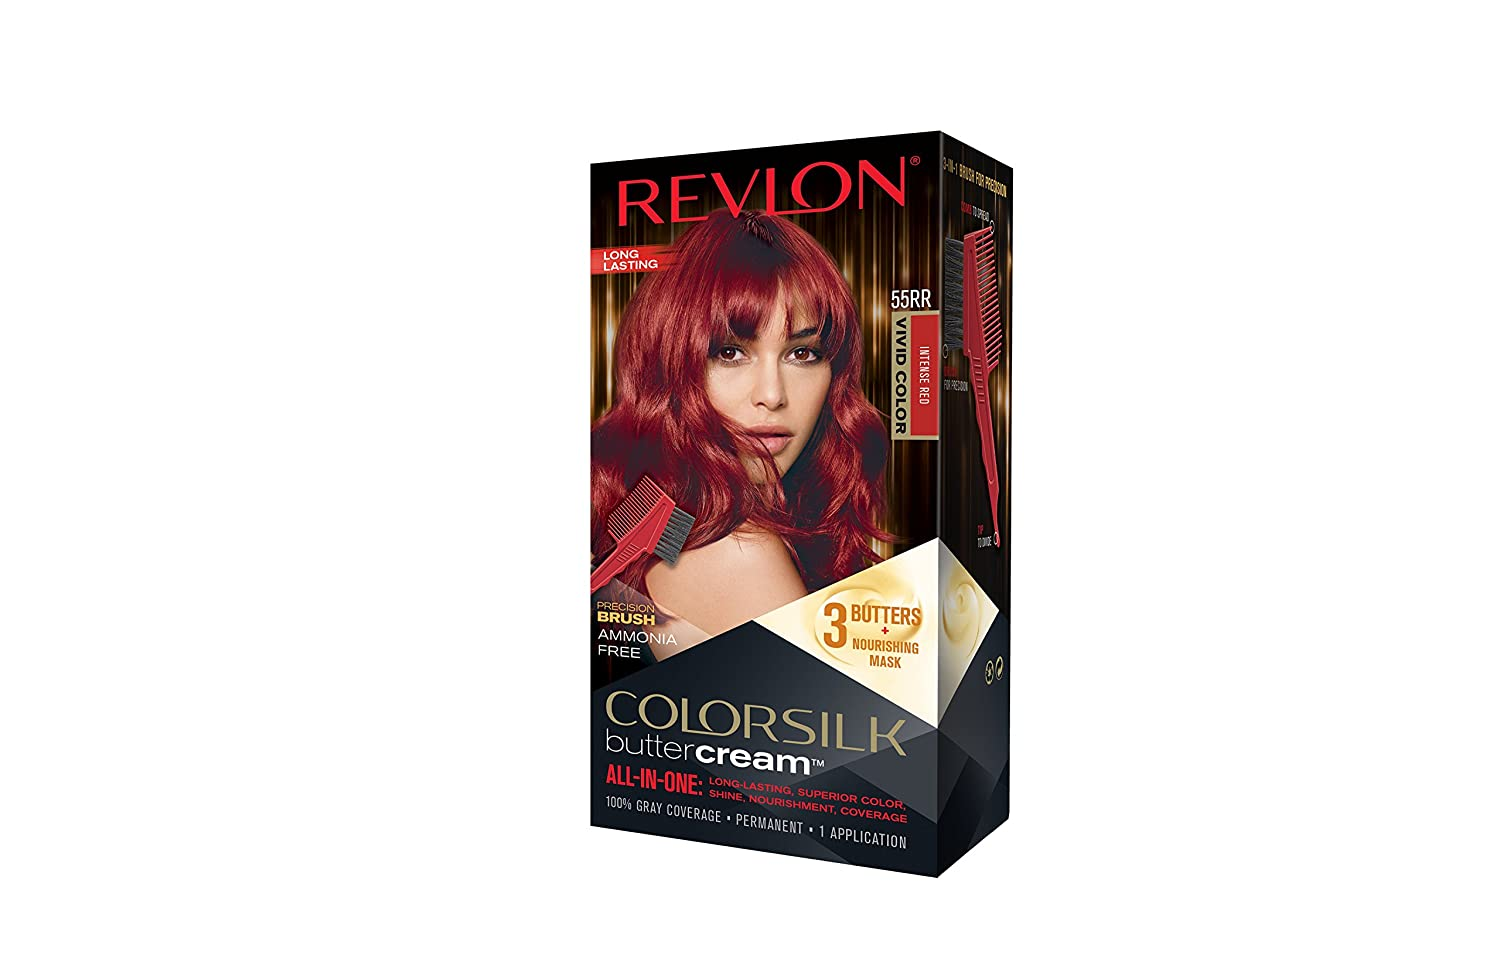 Revlon Colorsilk Buttercream Hair Dye, Vivid Intense Red, 1 Count